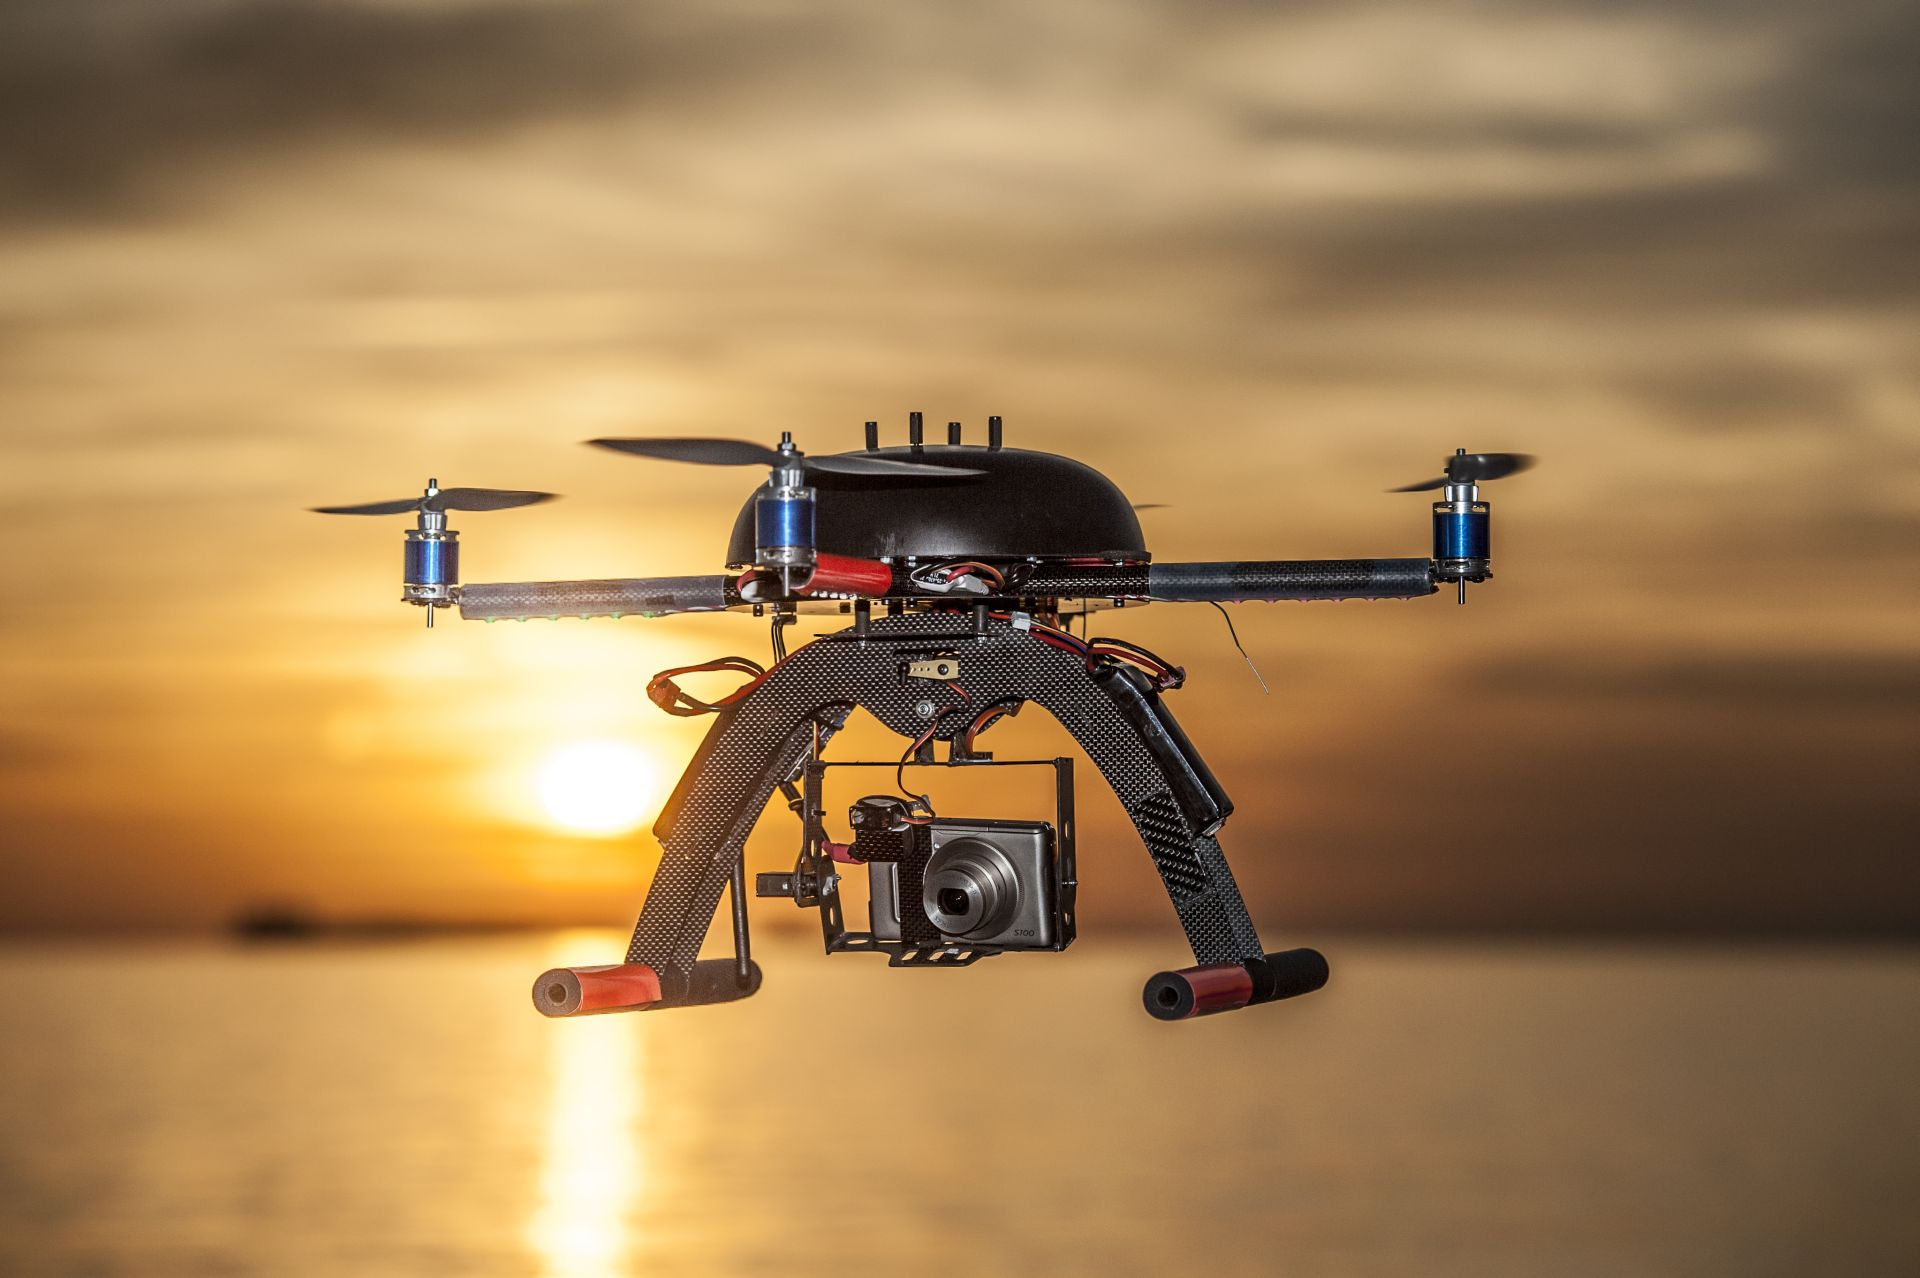 drone ing with Droni Le Nuove Restrizioni Dellenac Polemica on Scm additionally Kanye West Daughter North West Drones n 5657647 likewise Aerial Photography as well Make Worlds Trendiest Vegetable as well Droni Le Nuove Restrizioni Dellenac Polemica.